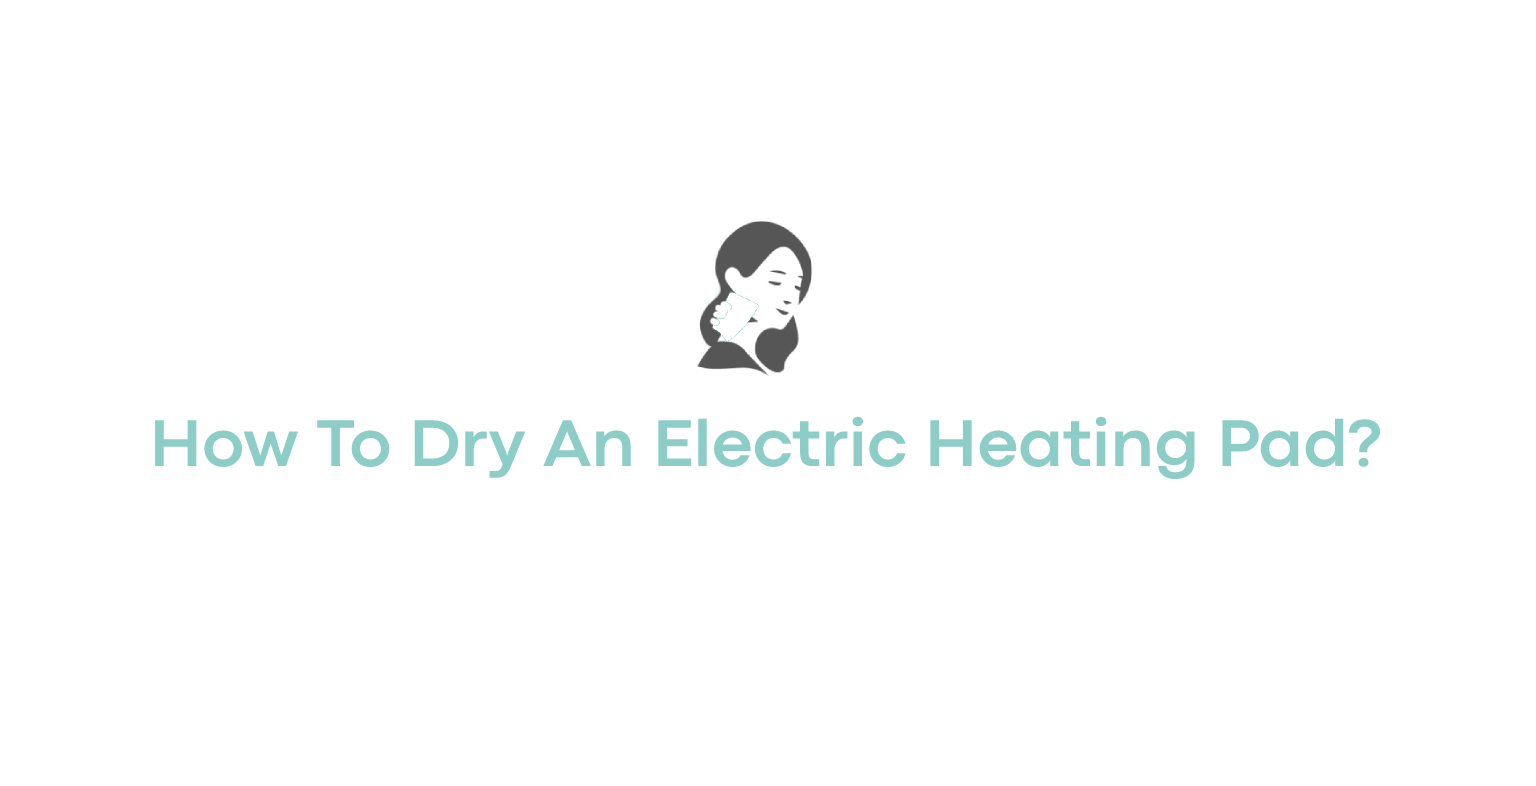 How To Dry An Electric Heating Pad